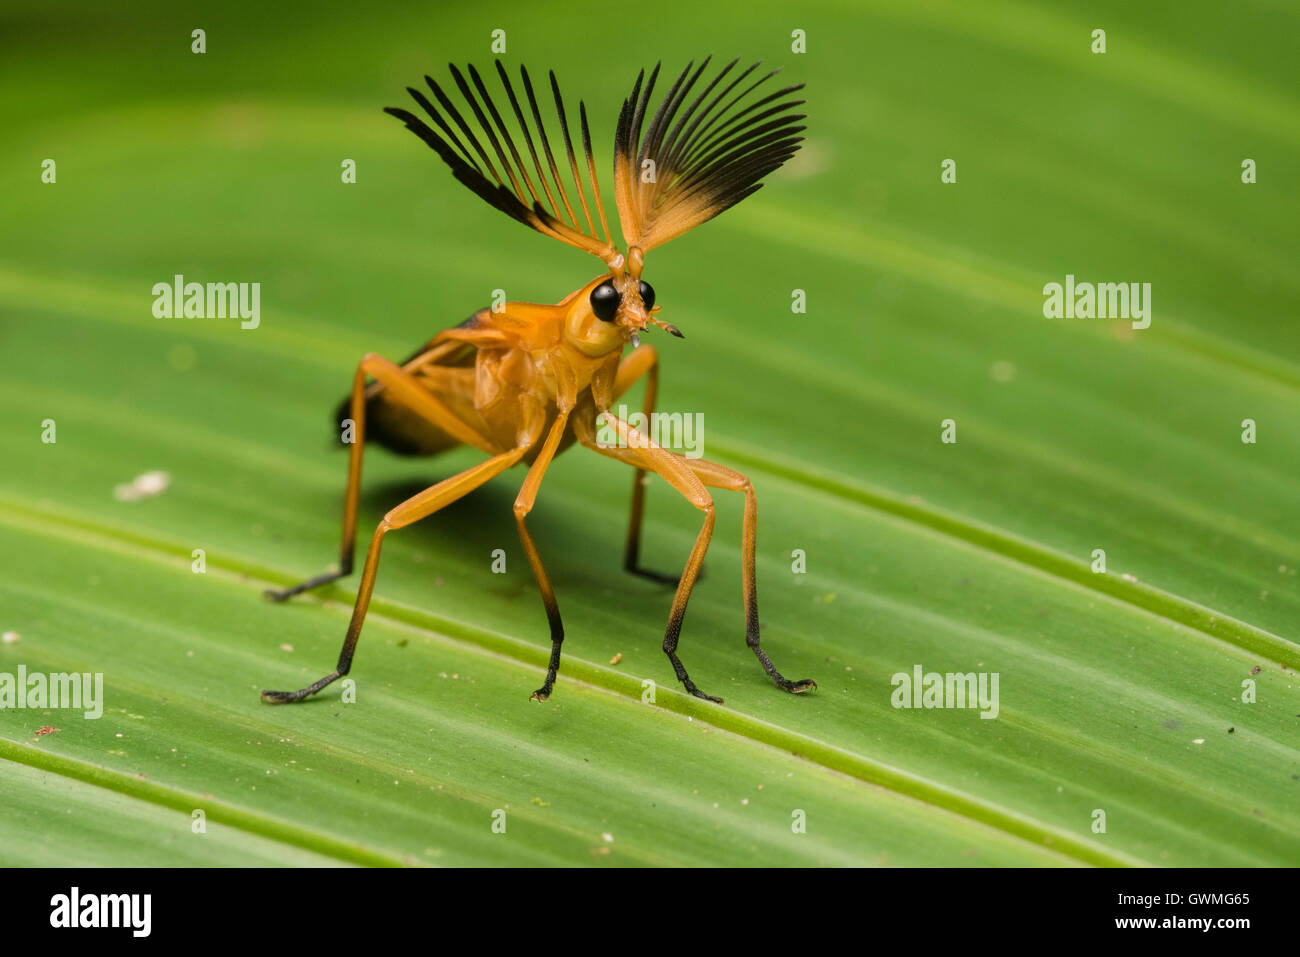 An adult Phengodid beetle displaying its impressive antennae in the Peruvian jungle. - Stock Image